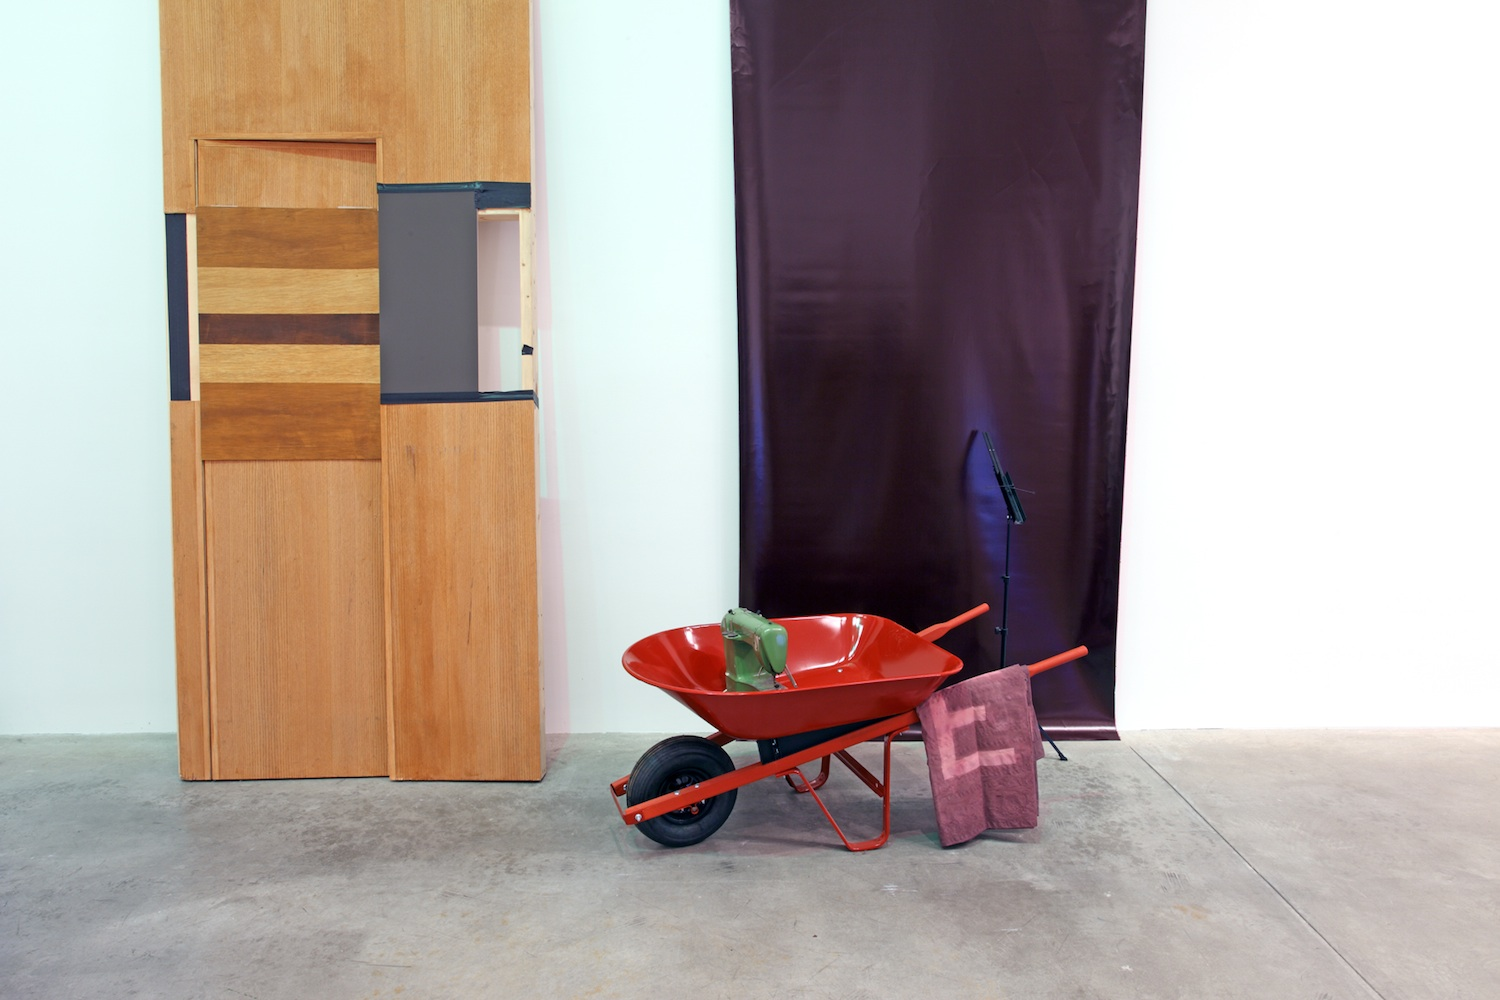 False Door with Wheelbarrow